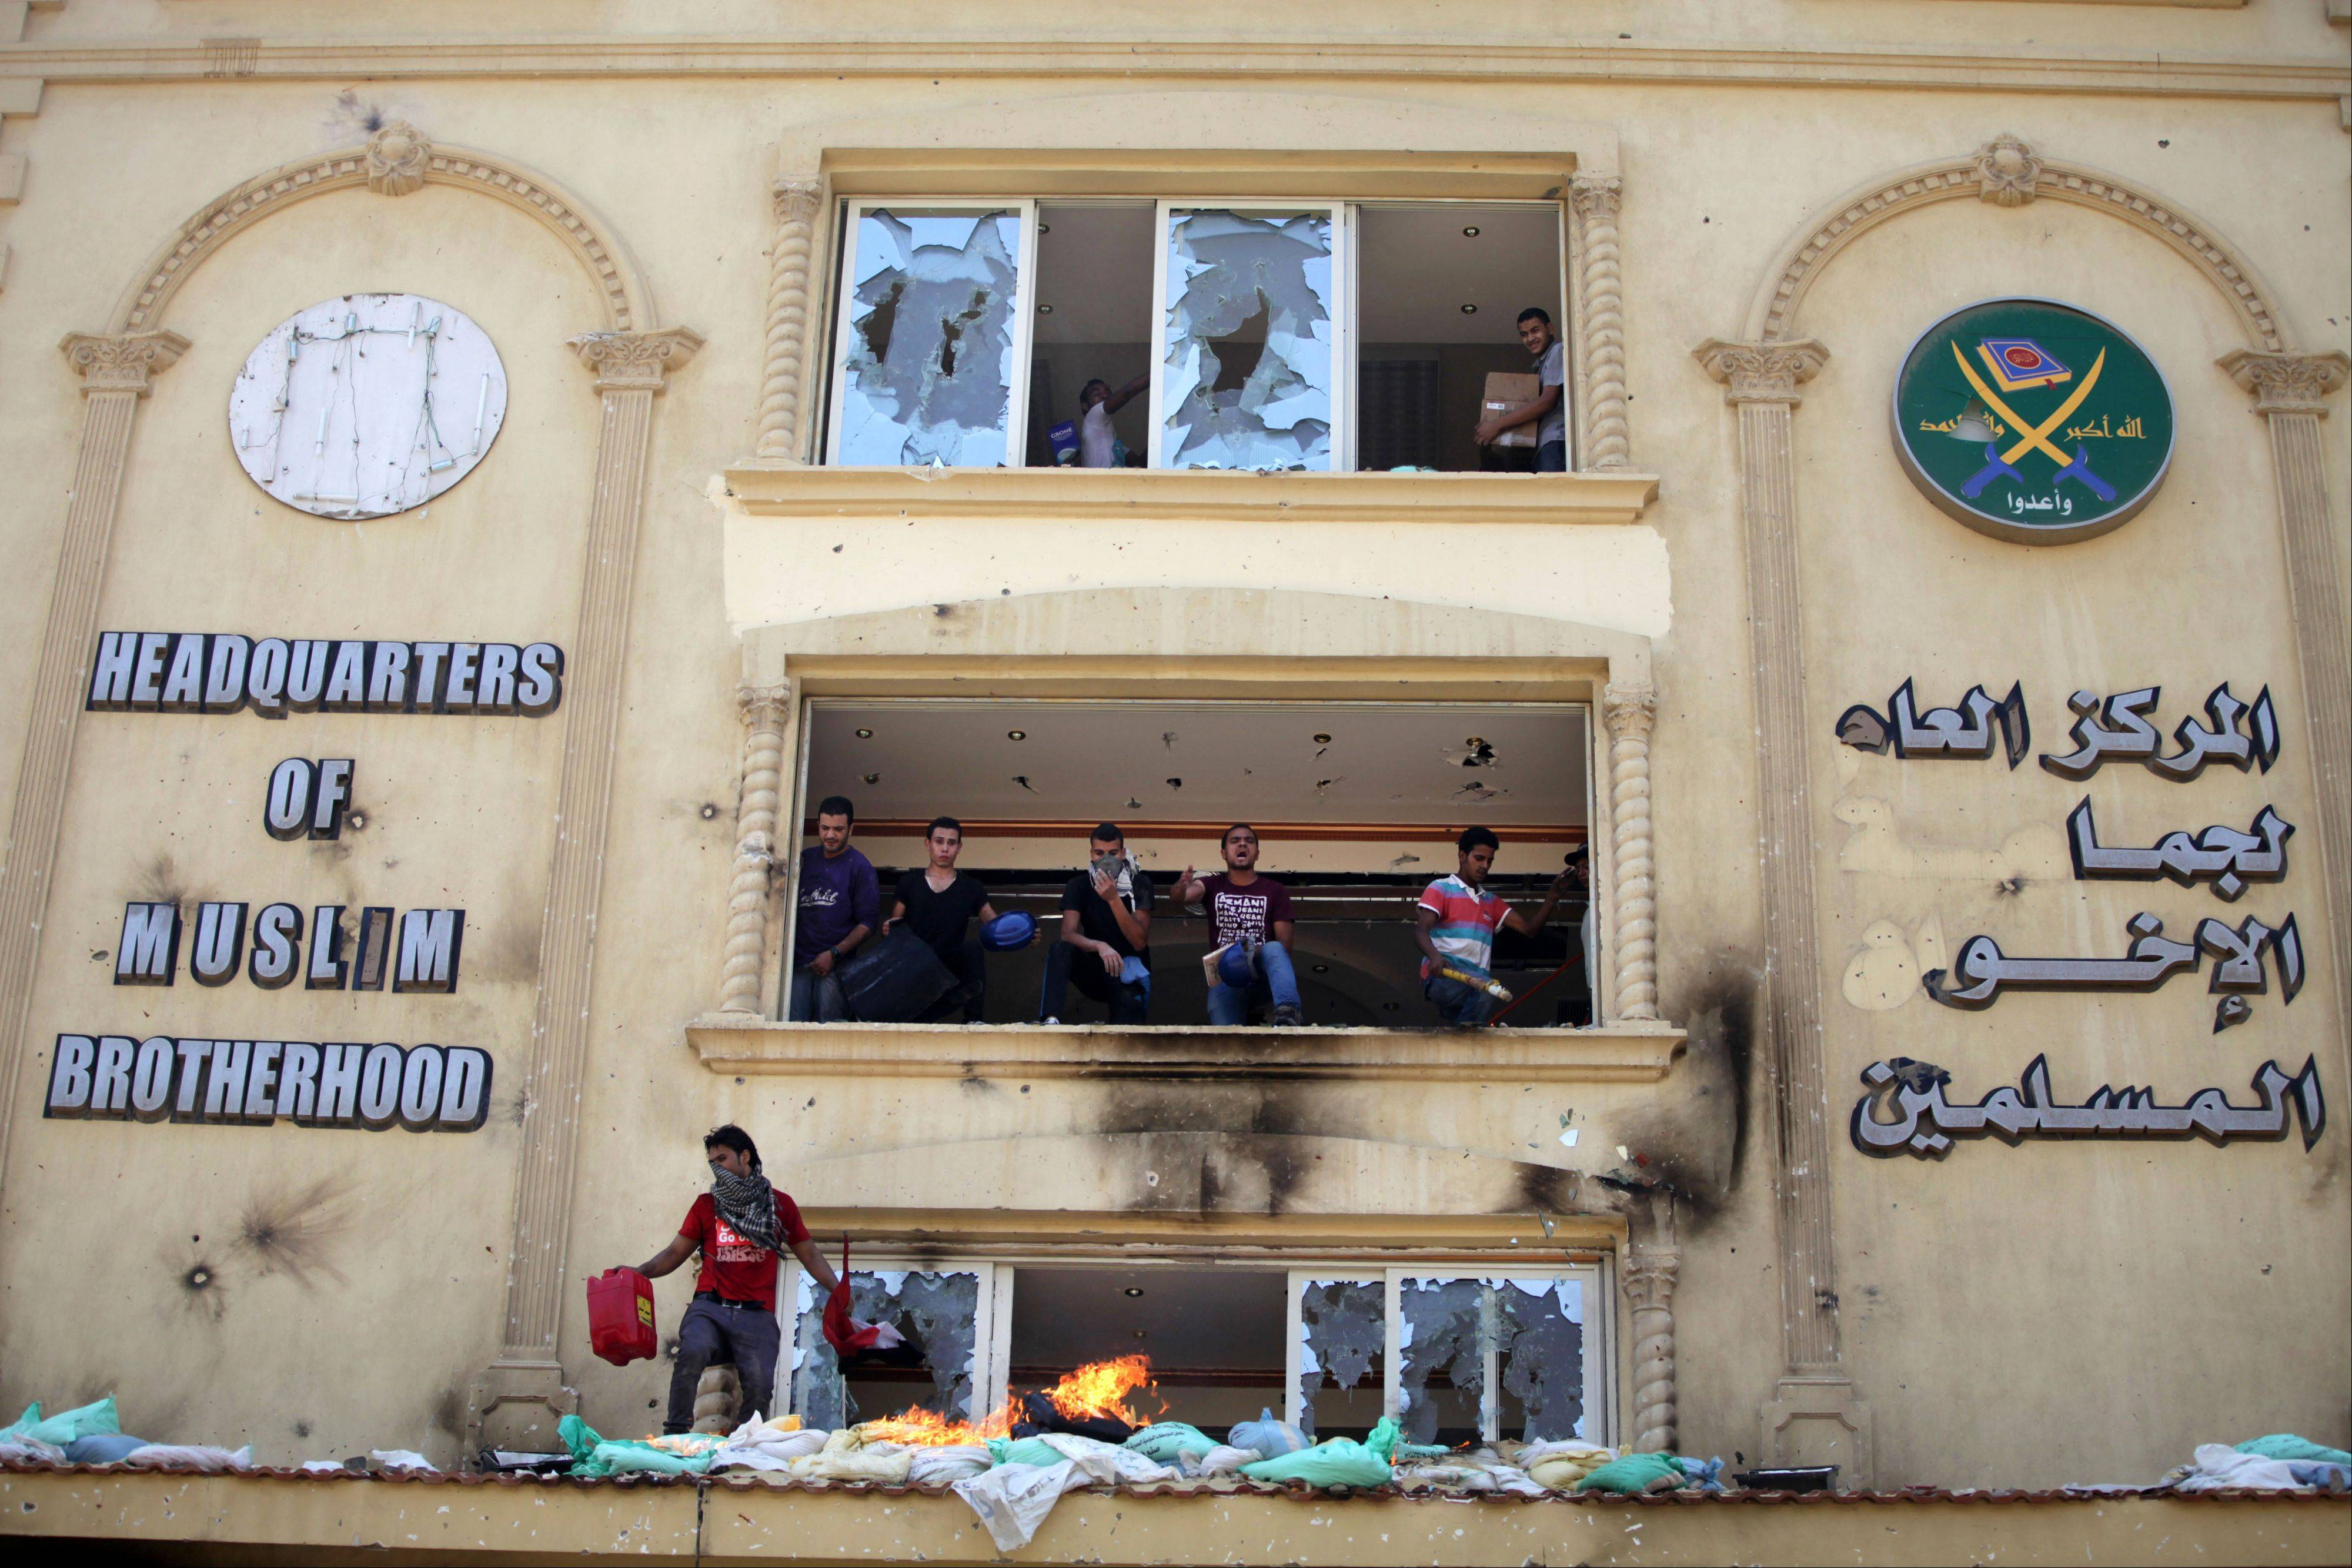 Protesters ransack the Muslim Brotherhood headquarters in the Muqatam district in Cairo Monday in an attack that could spark more violence as demonstrators gear up for a second day of mass rallies aimed at forcing the Islamist leader from power.